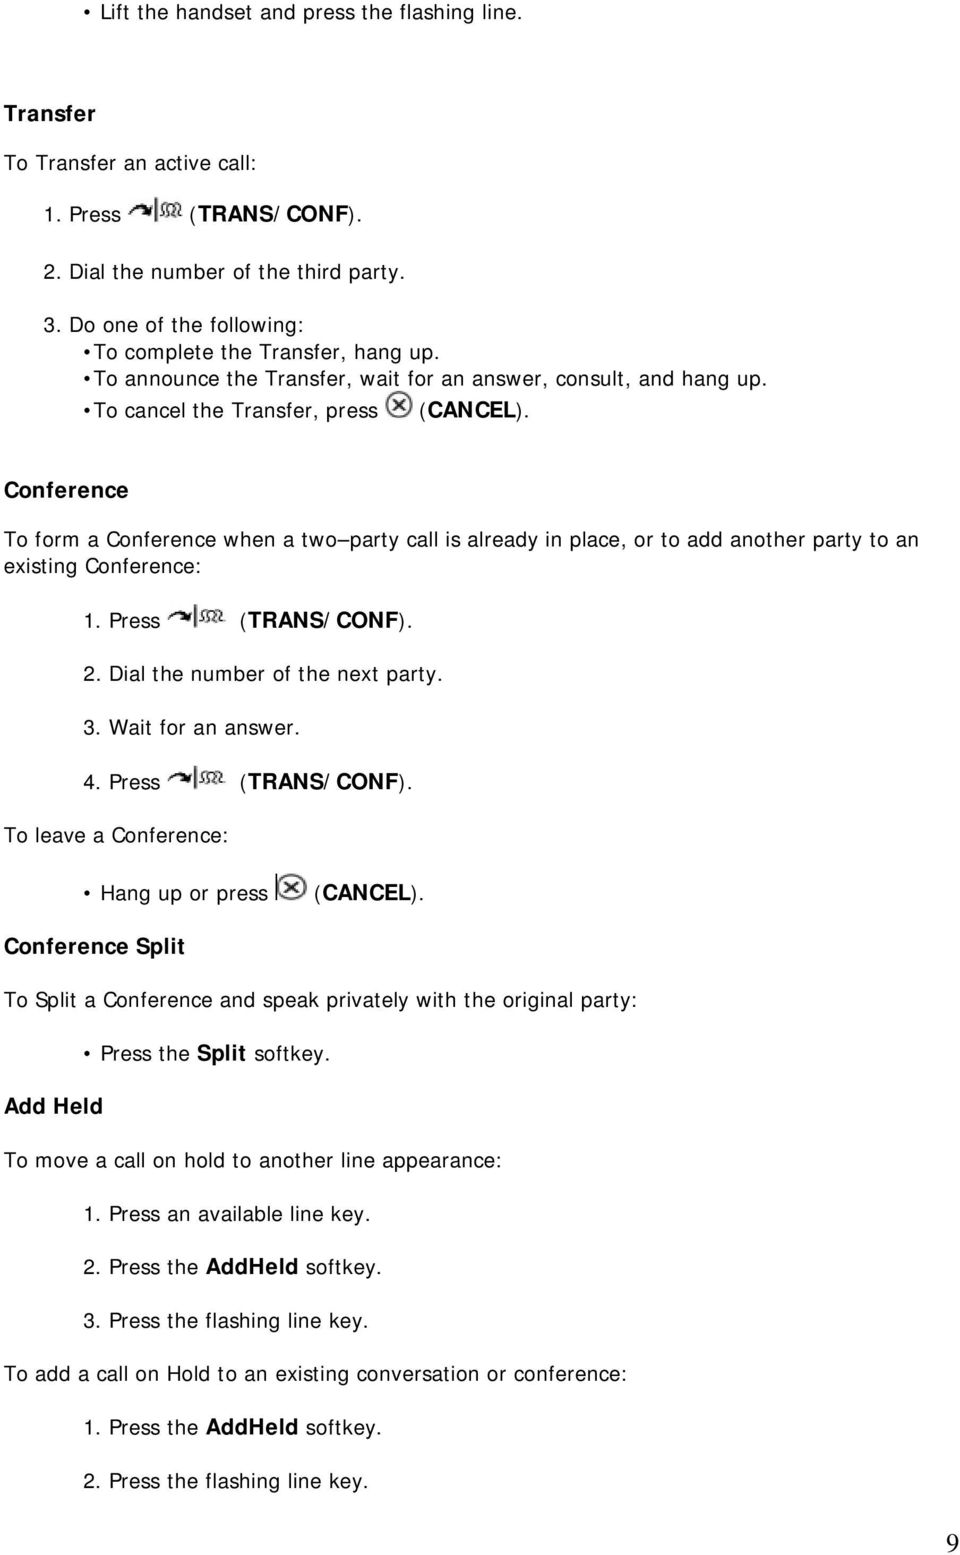 Conference To form a Conference when a two party call is already in place, or to add another party to an existing Conference: 1. Press (TRANS/CONF). 2. Dial the number of the next party. 3.